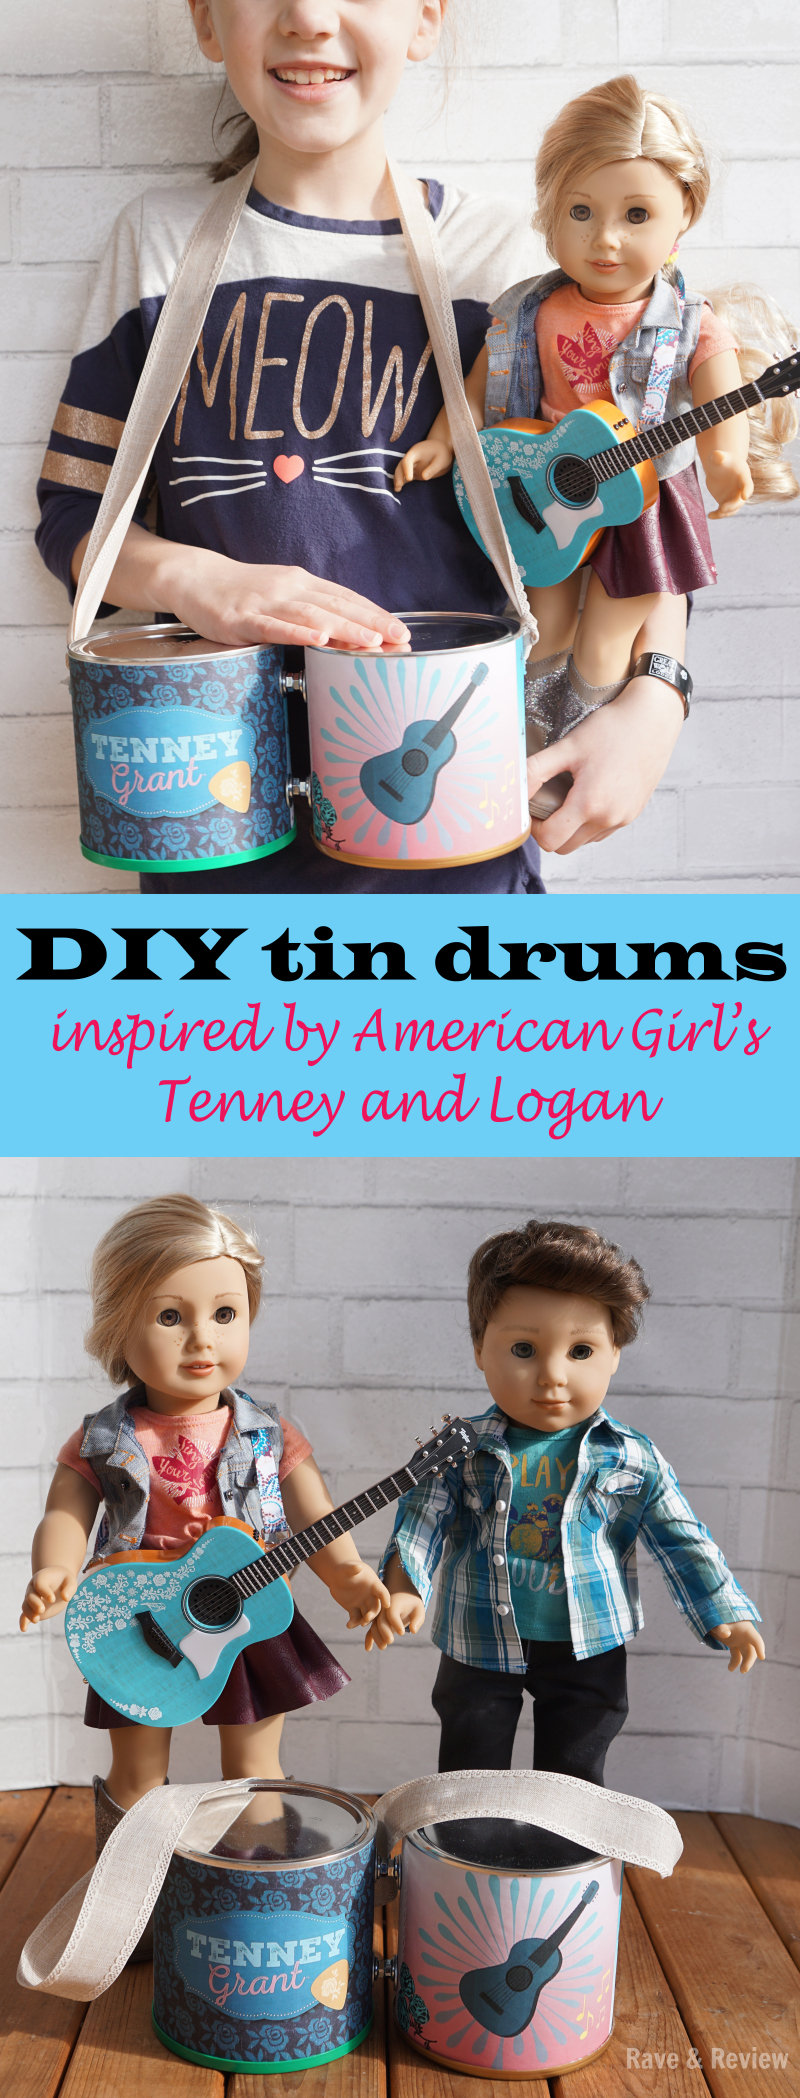 DIY tin drums inspired by American Girl's Tenney and Logan